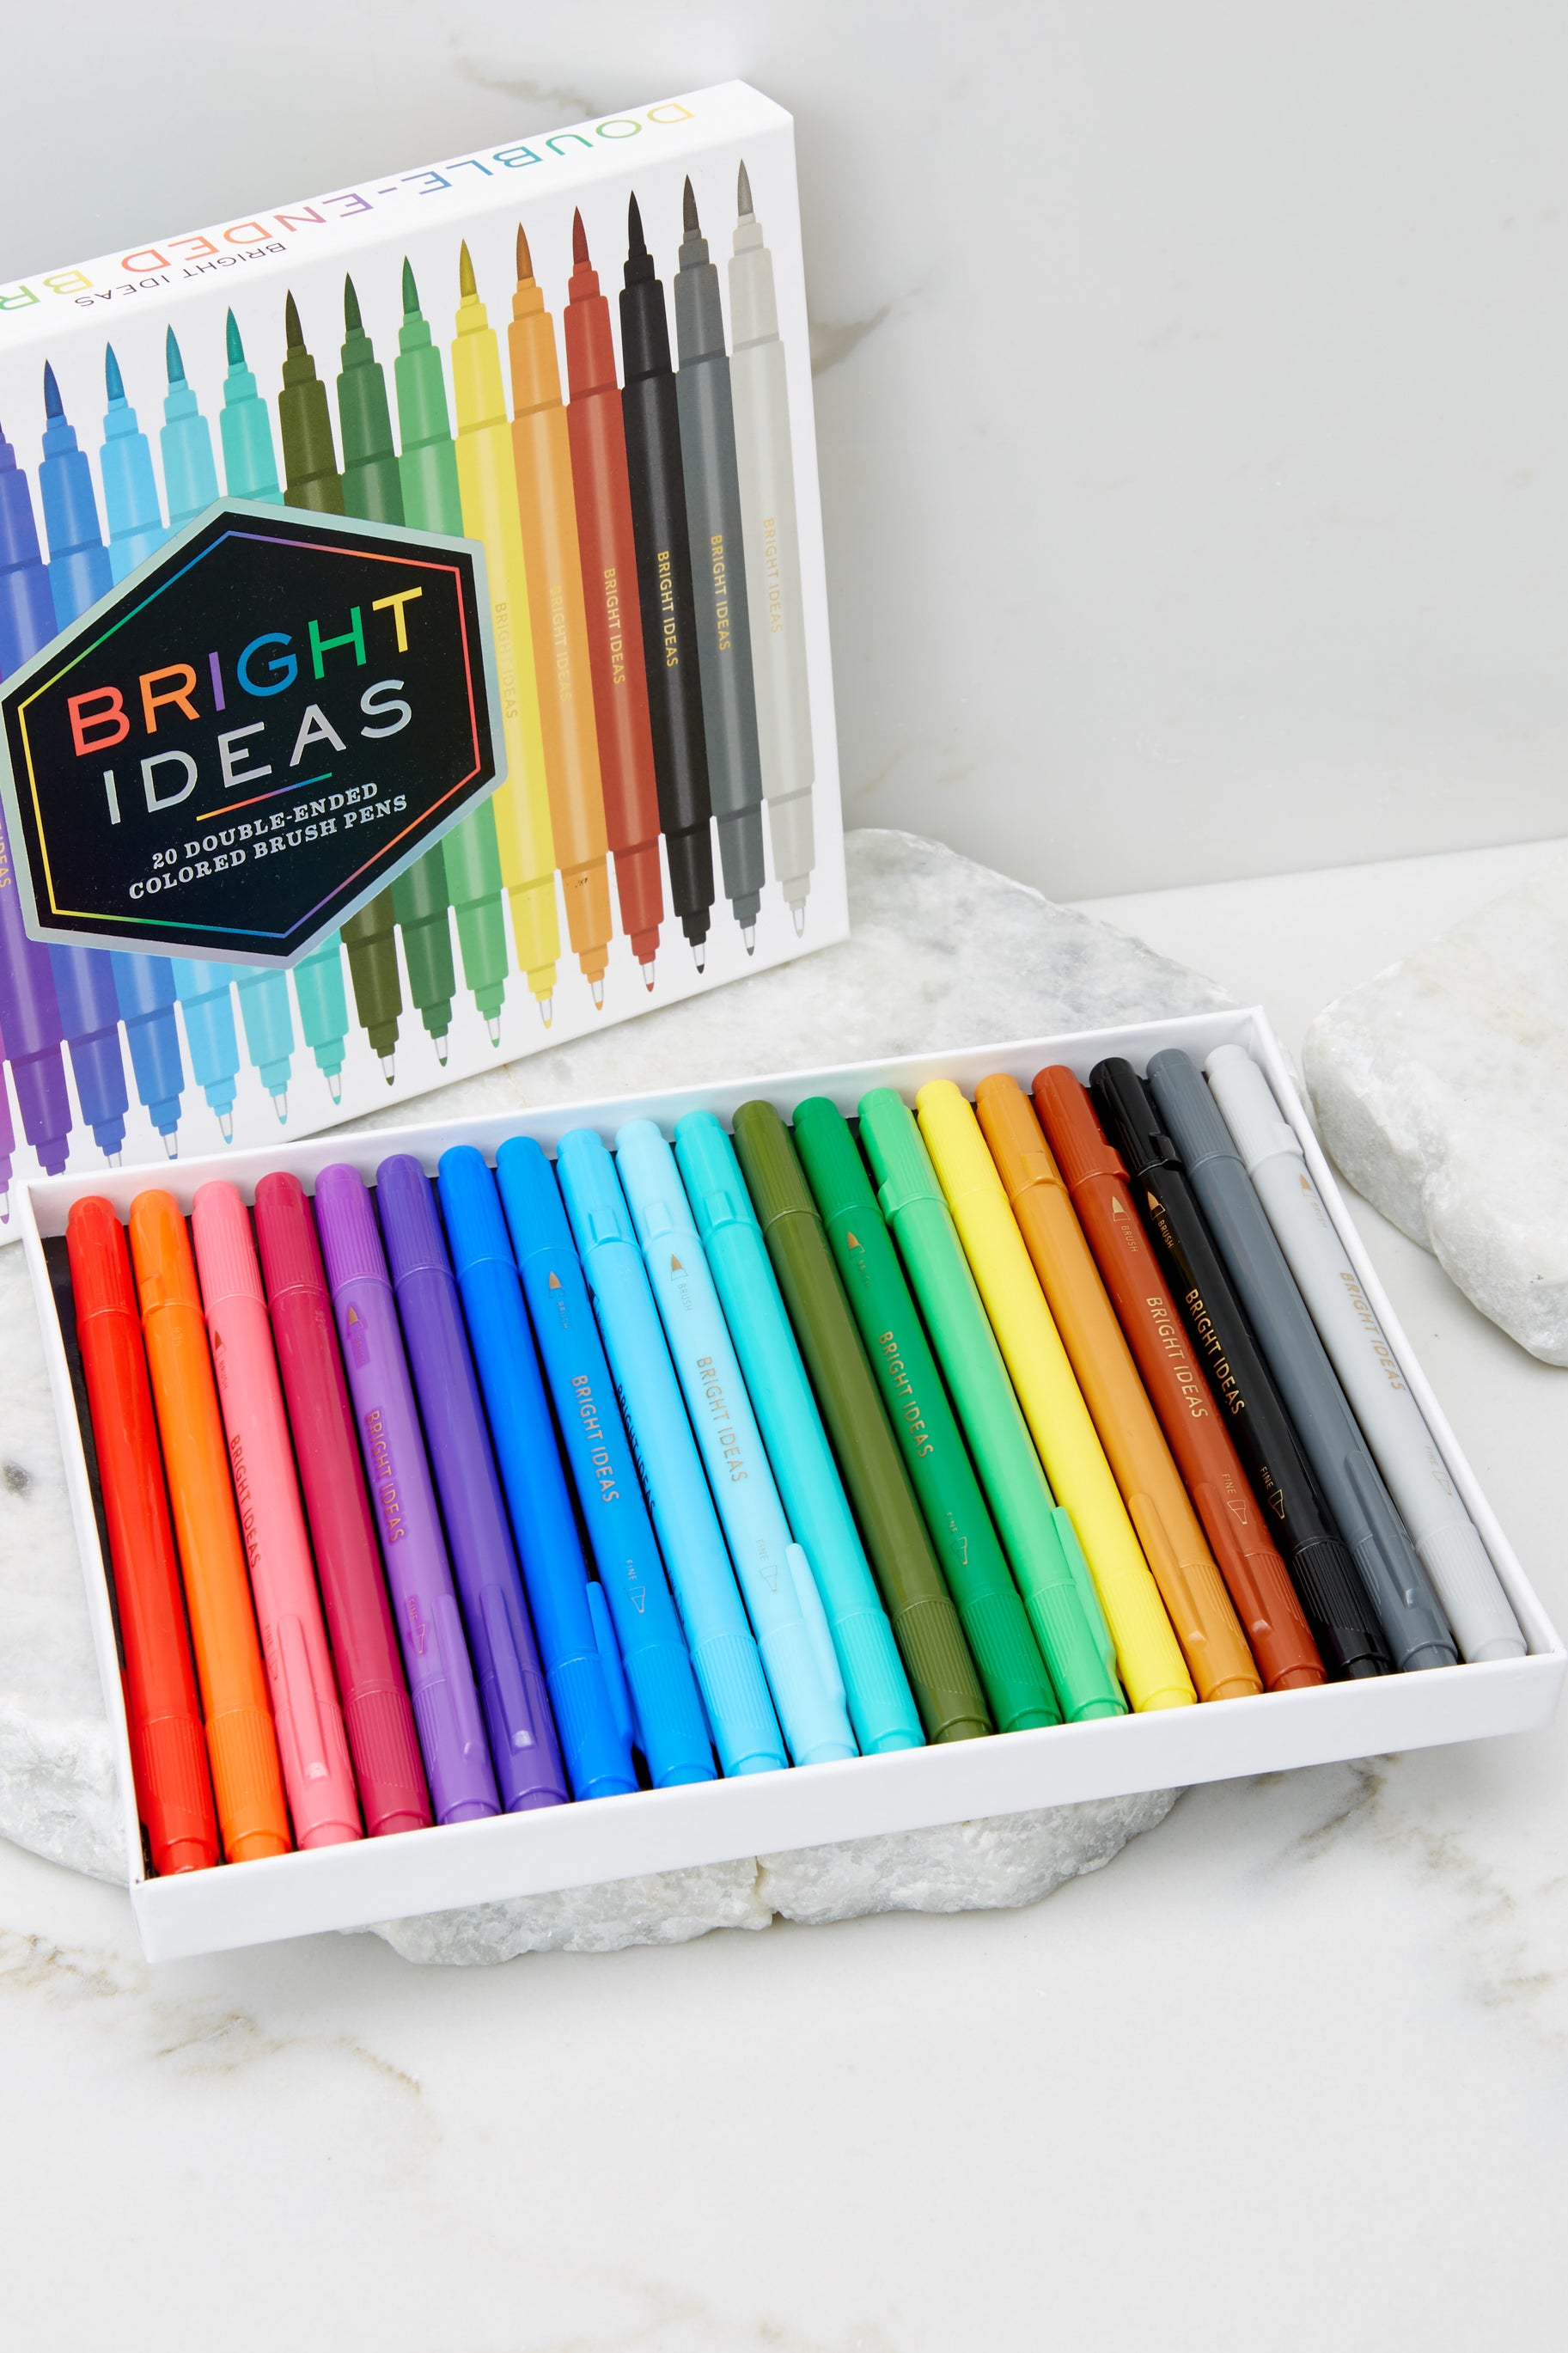 1 Bright Ideas Double-Ended Colored Brush Pens at reddress.com